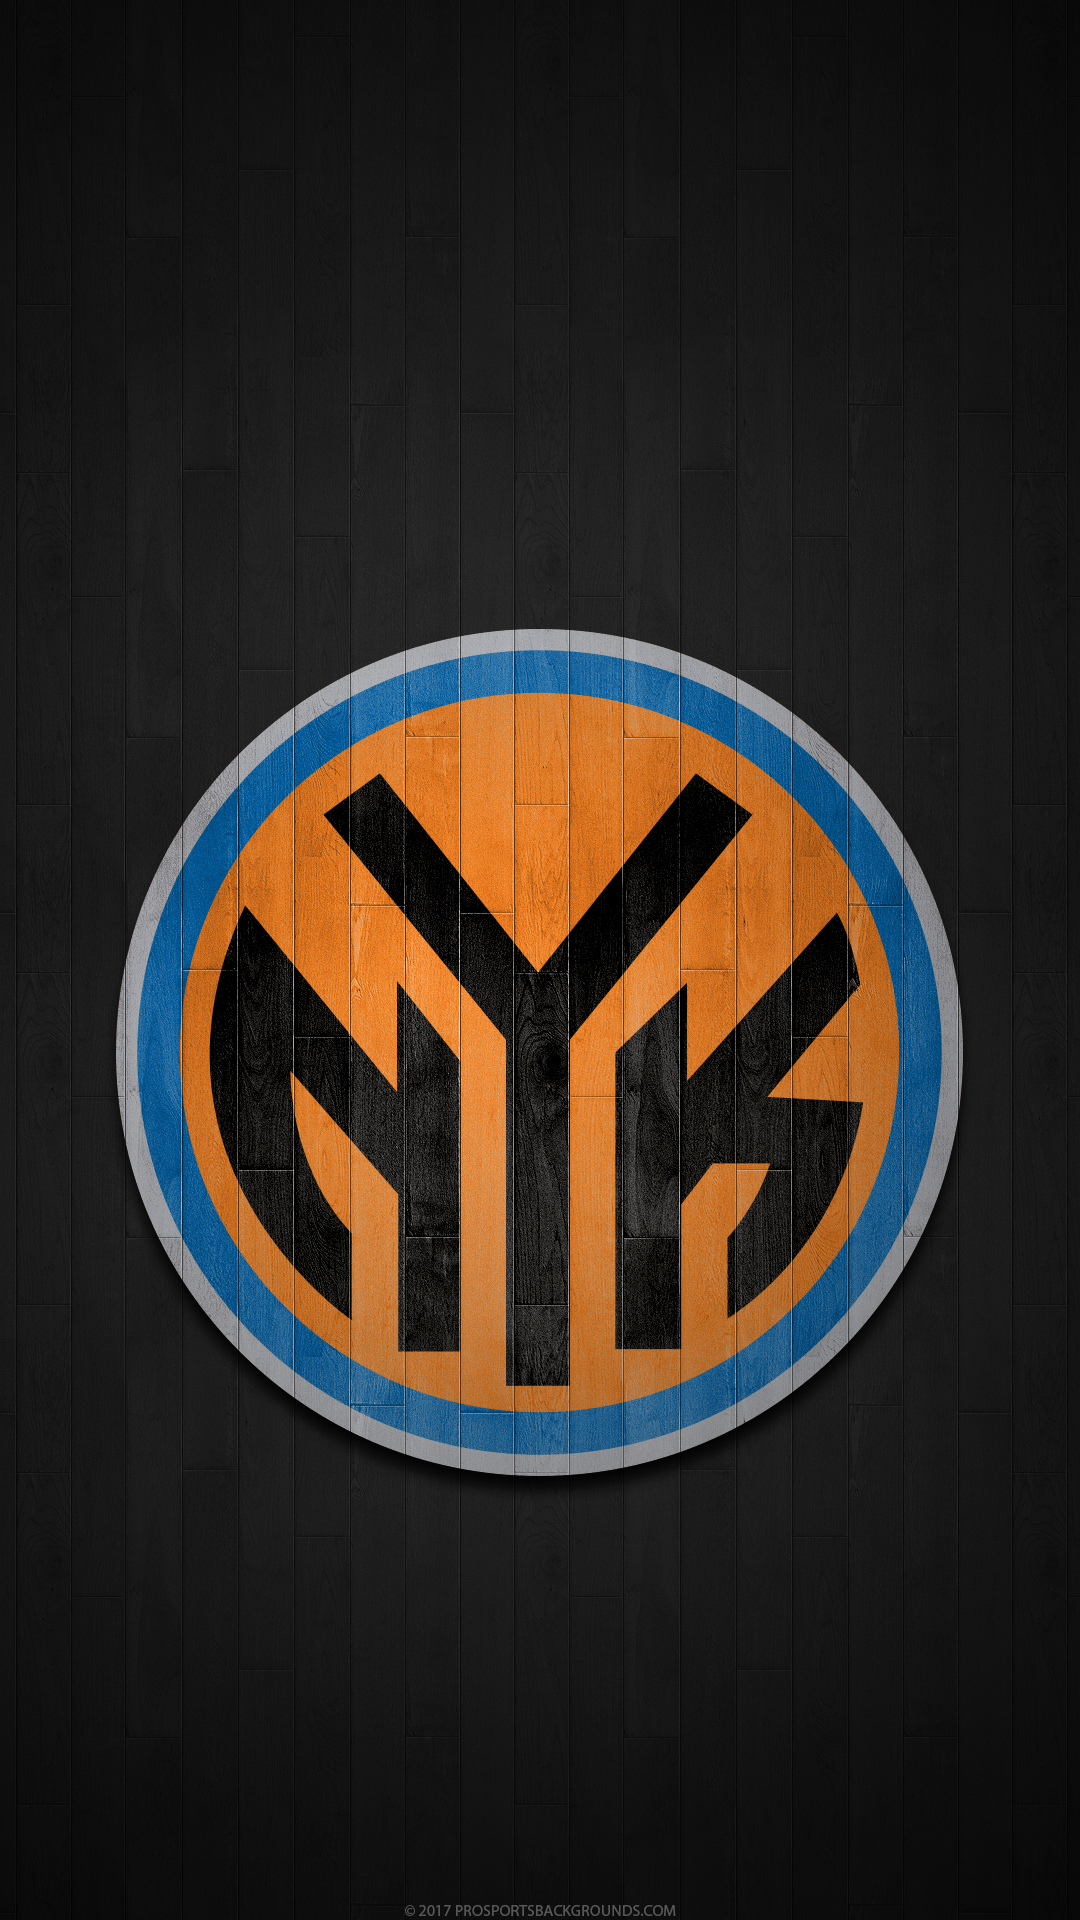 1080x1920 - New York Knicks Wallpapers 9